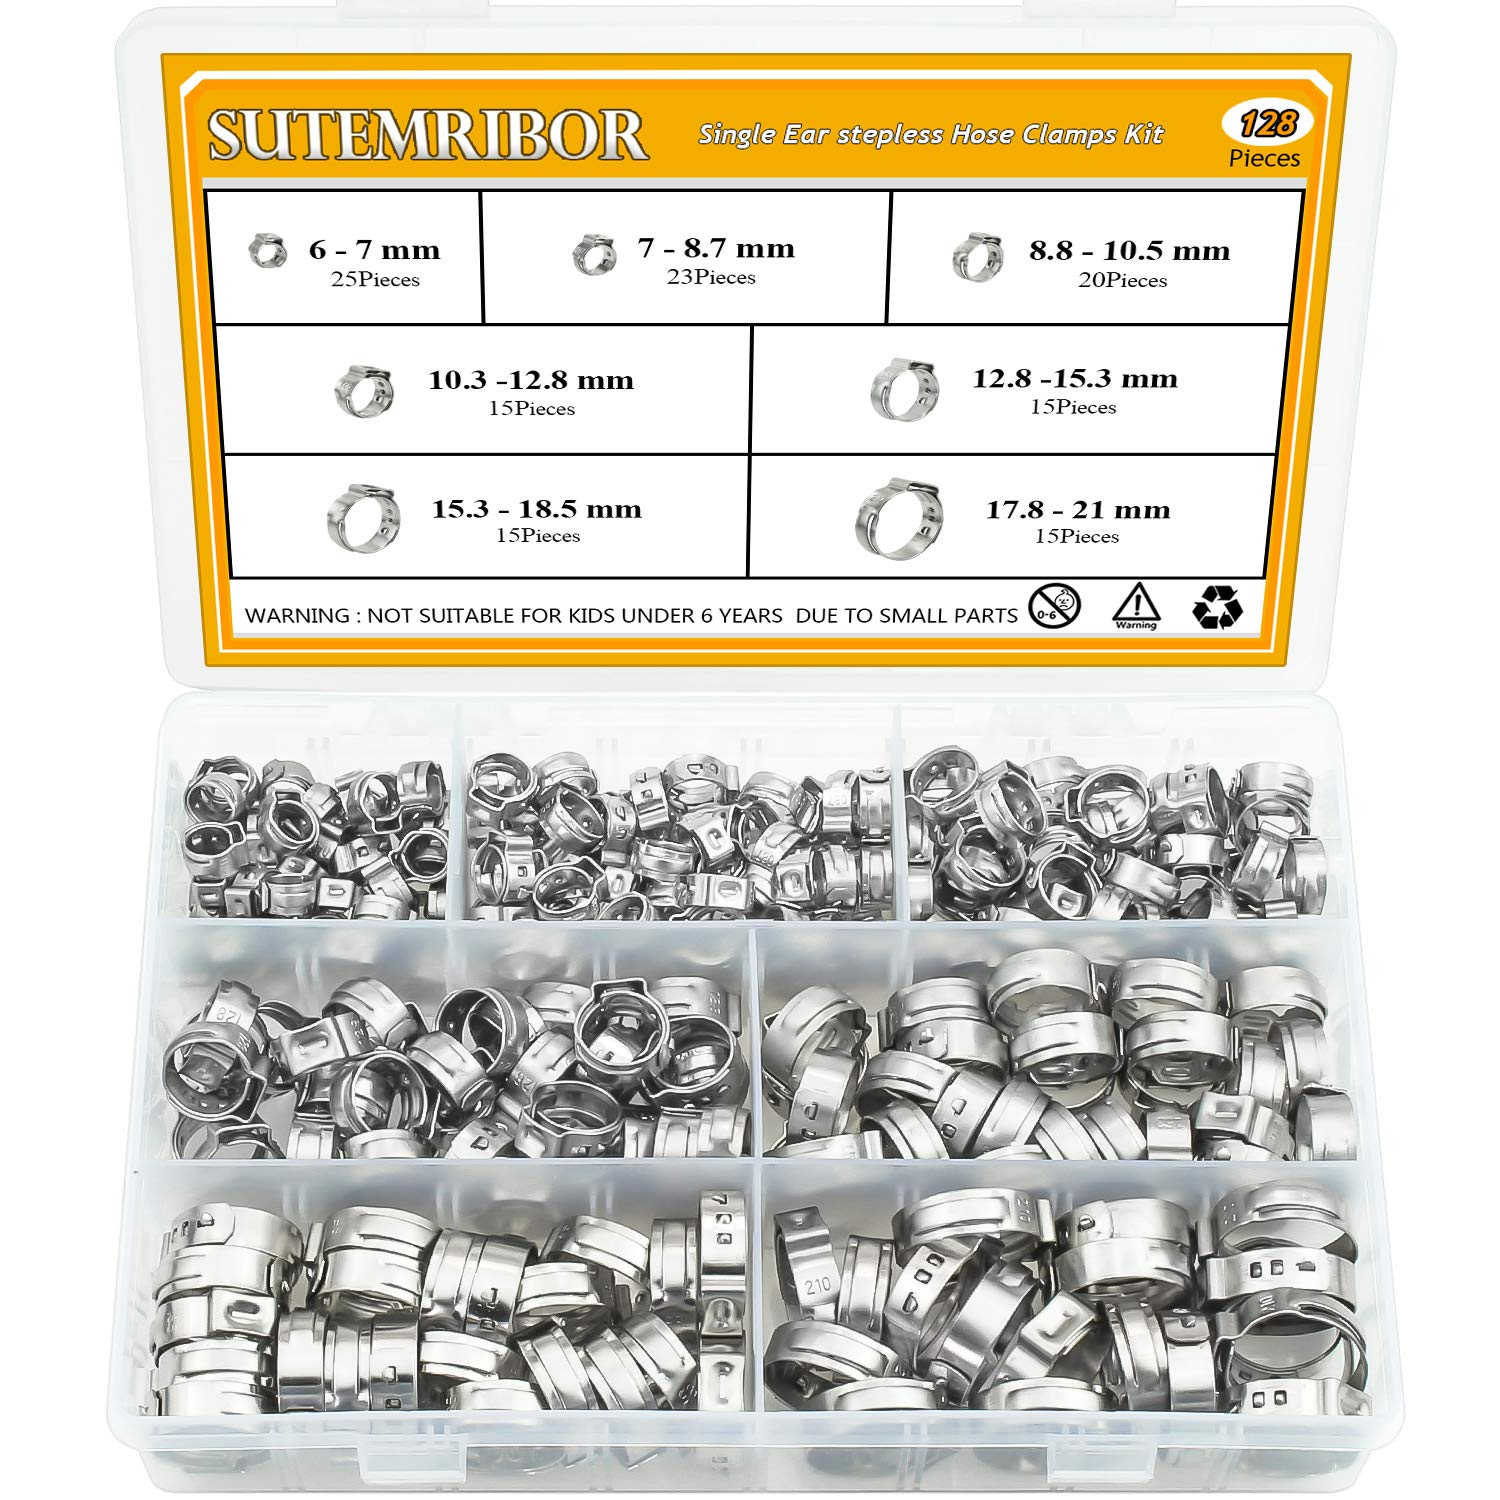 Sutemribor 304 Stainless Steel 7-21mm Single Ear stepless Hose Clamps Assortment Kit, 128PCS by Sutemribor